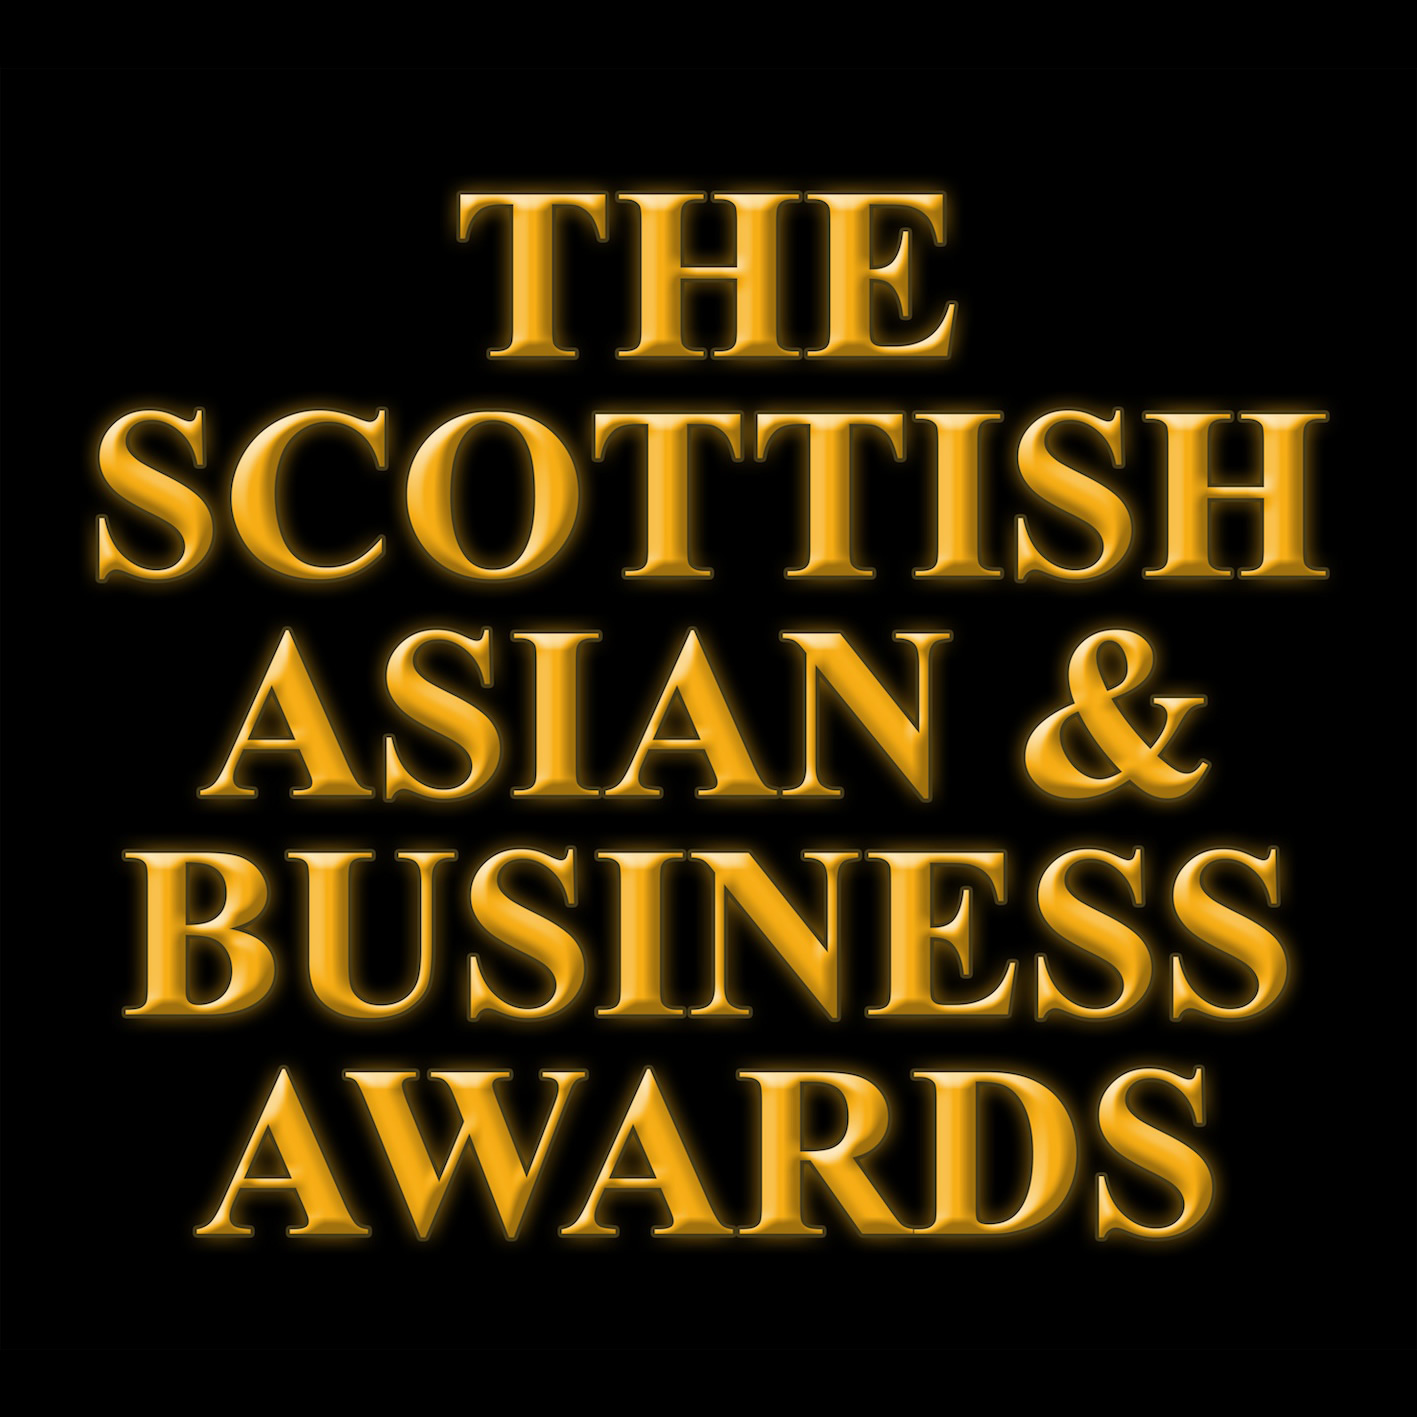 Scottish Asian & Business Awards